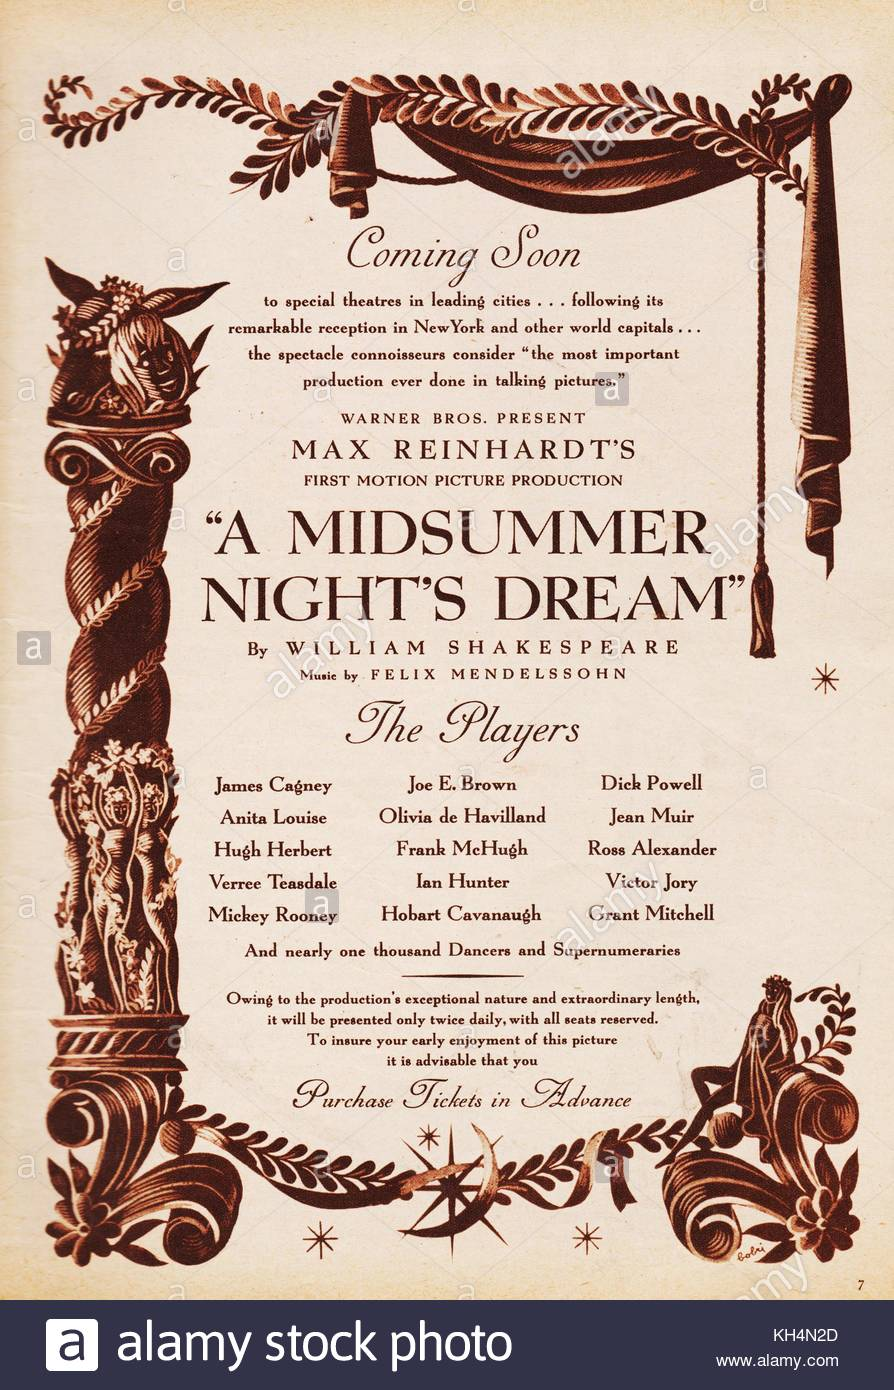 an analysis of the movie based on the play midsummers night dream Puck, also known as robin goodfellow, is a character in william shakespeare's play a midsummer night's dream, based on the ancient figure of puck found in english mythology puck is a clever film mickey rooney, in the oscar-winning 1935 film.